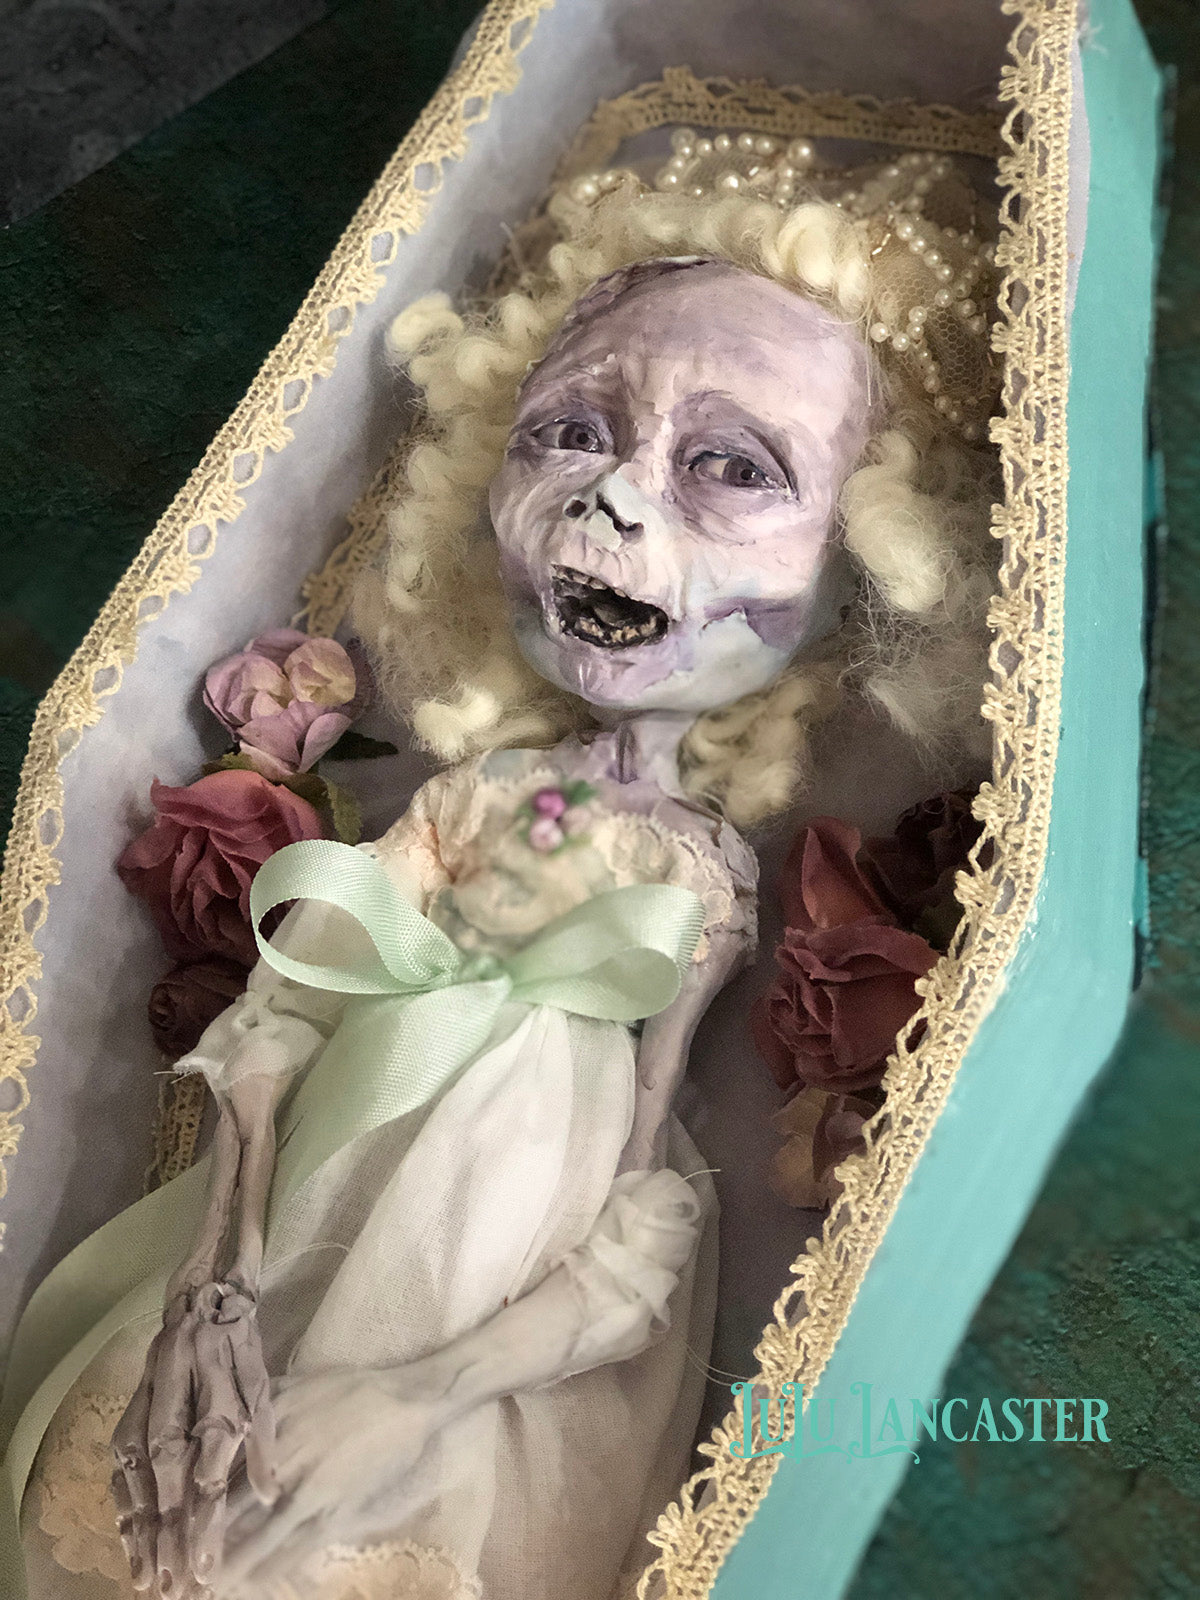 Miriam the Corpse Halloween Original wall hanging Art Doll by LuLu Lancaster